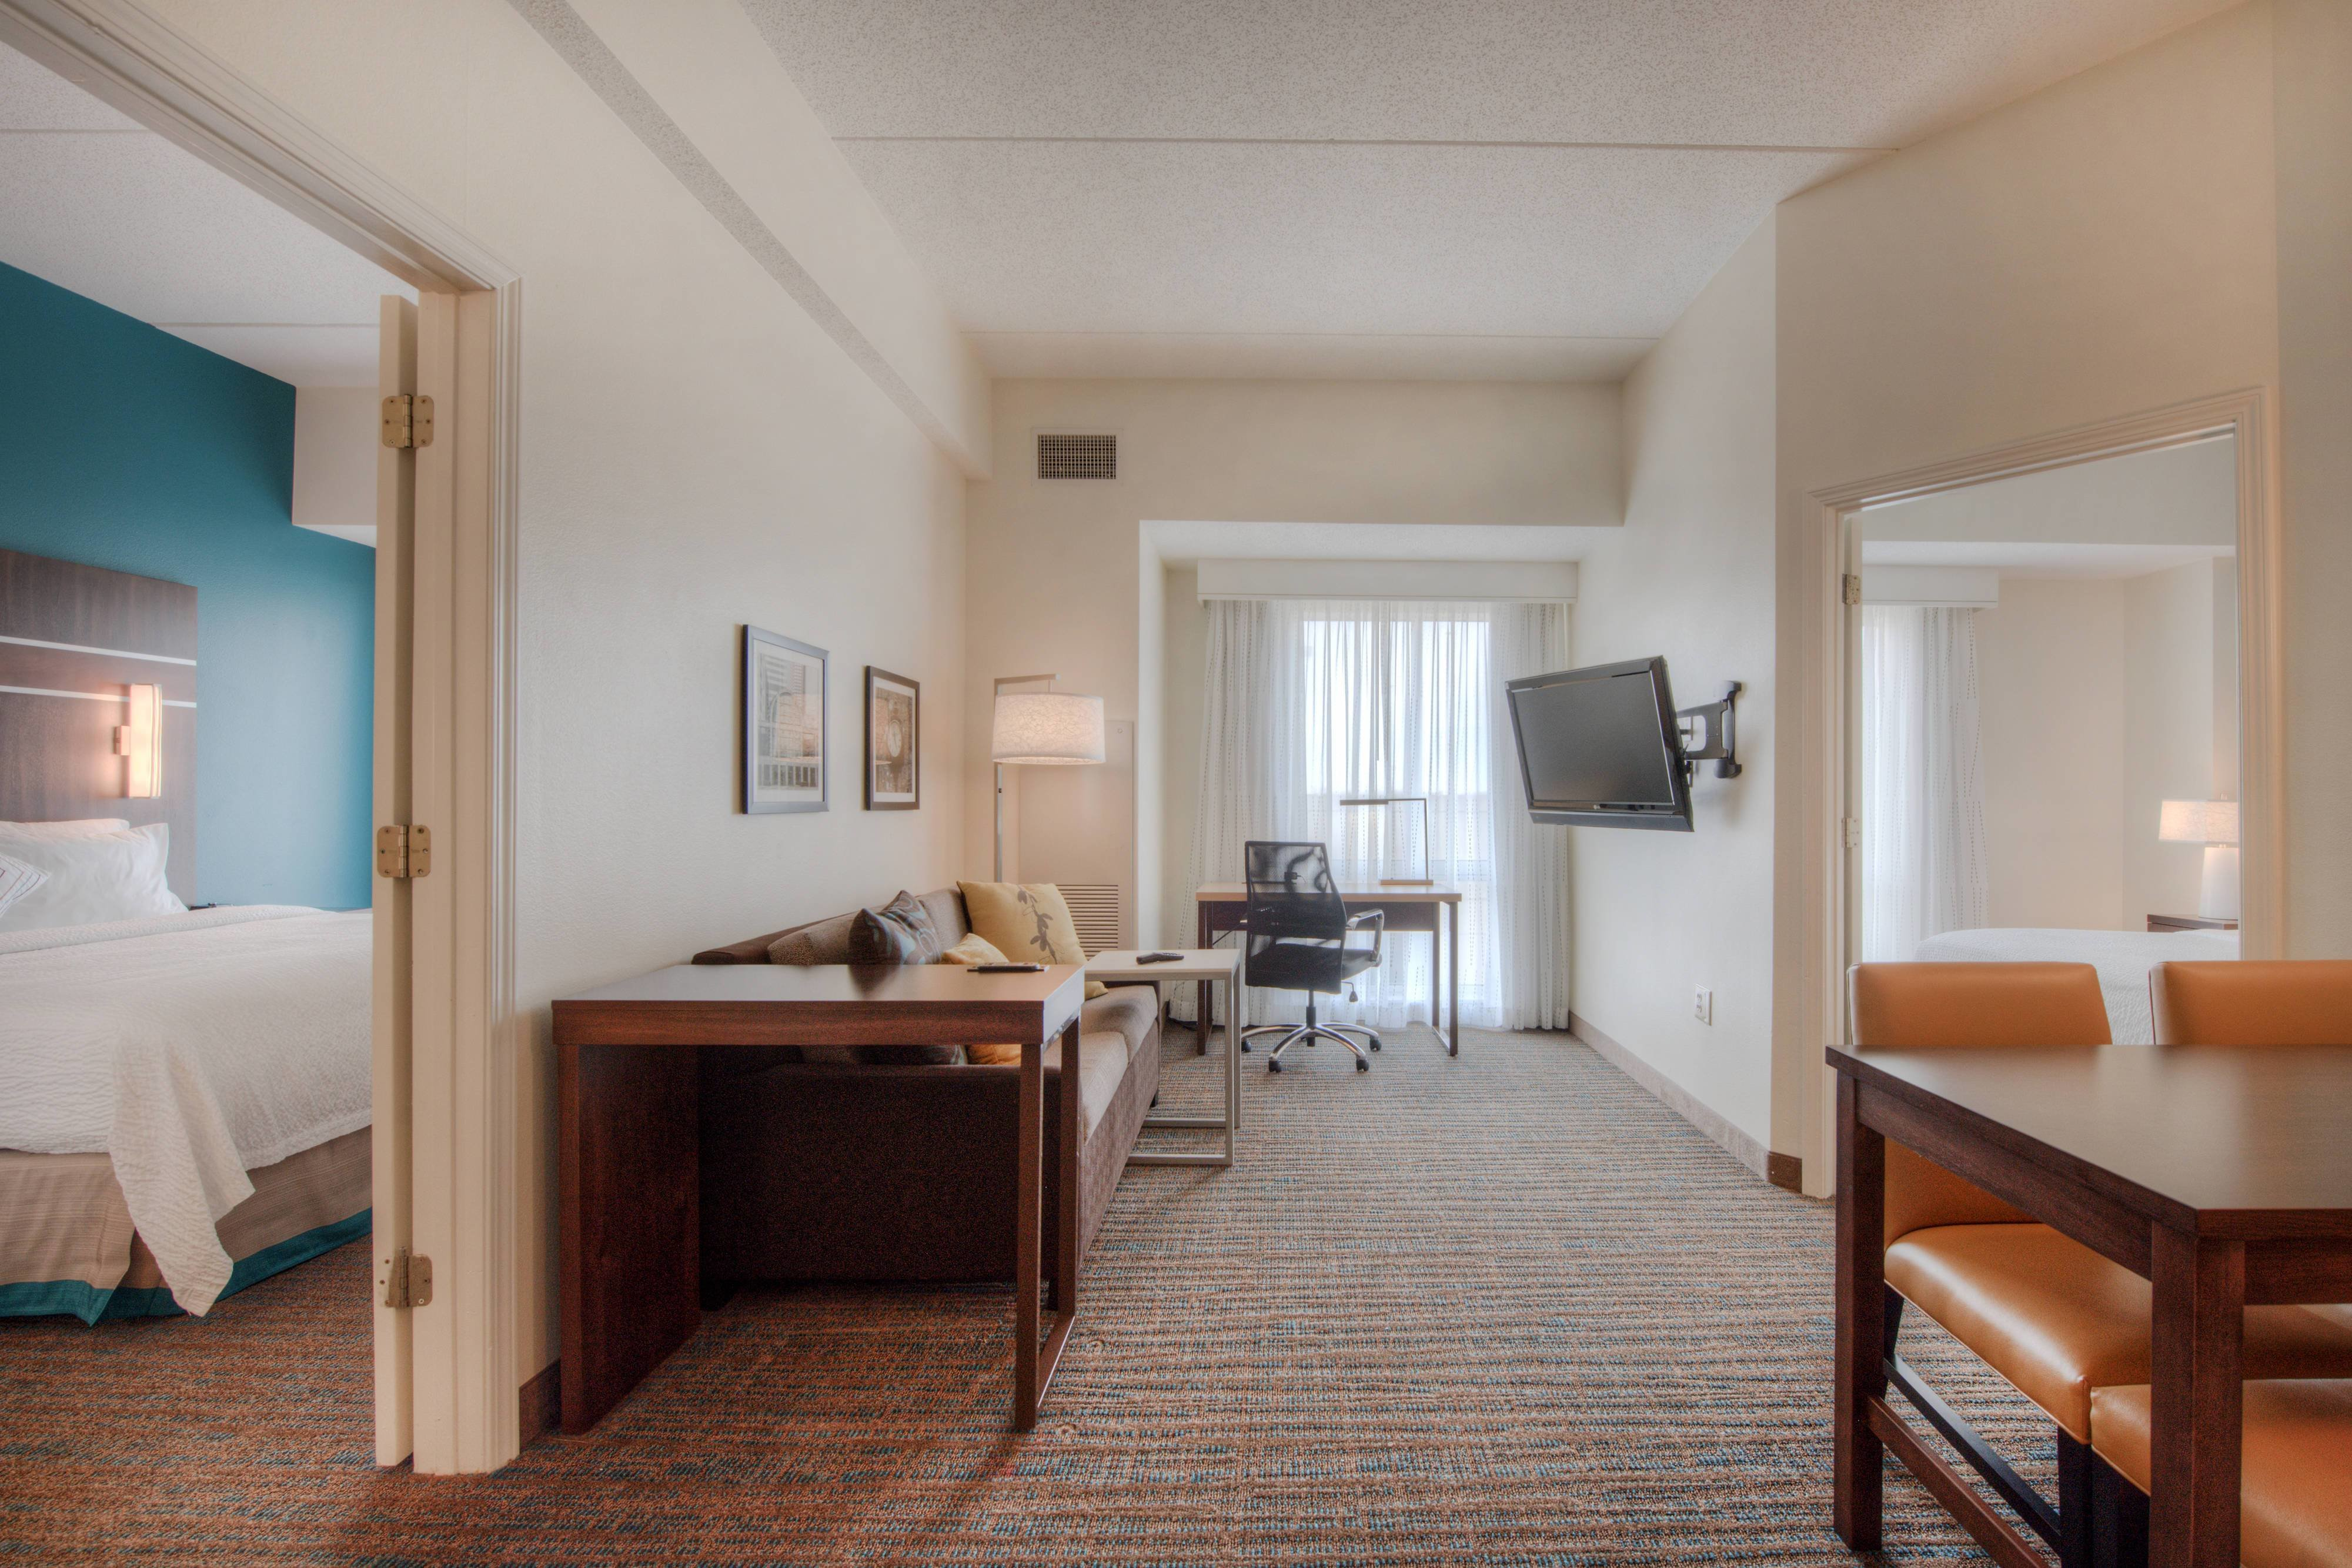 Best Hotel Rooms Amenities Residence Inn Charlotte Uptown With Pictures